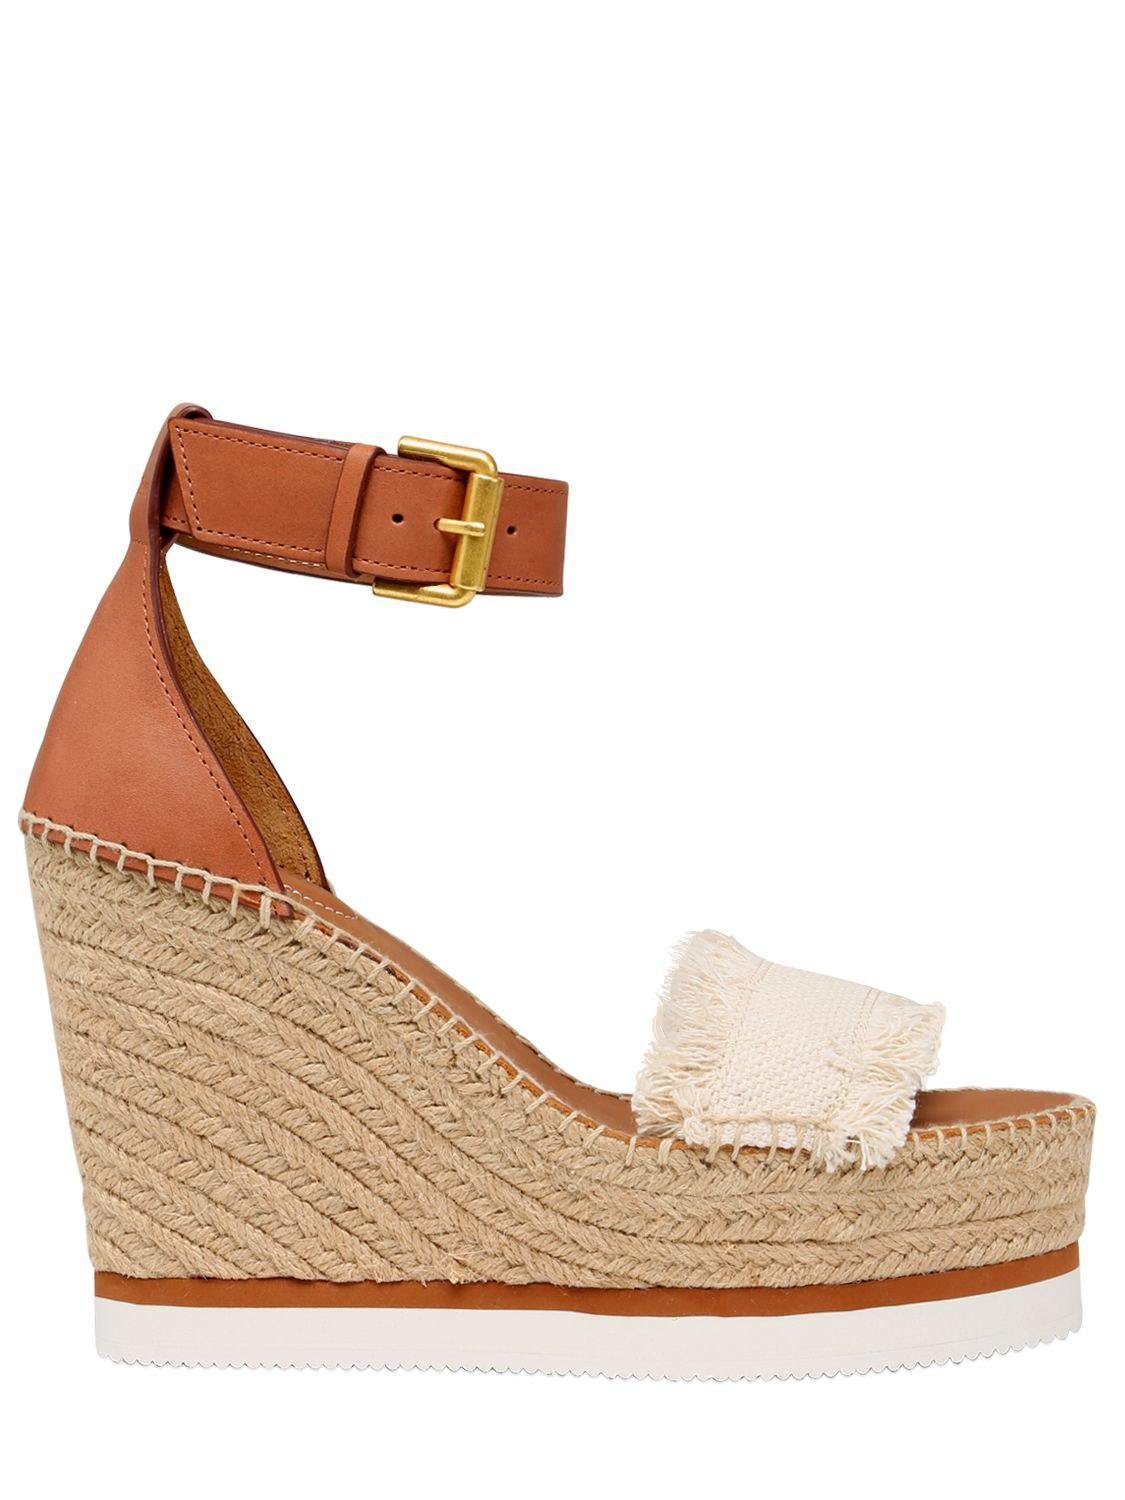 Chloé 120MM CANVAS & LEATHER WEDGE SANDALS 3R14t